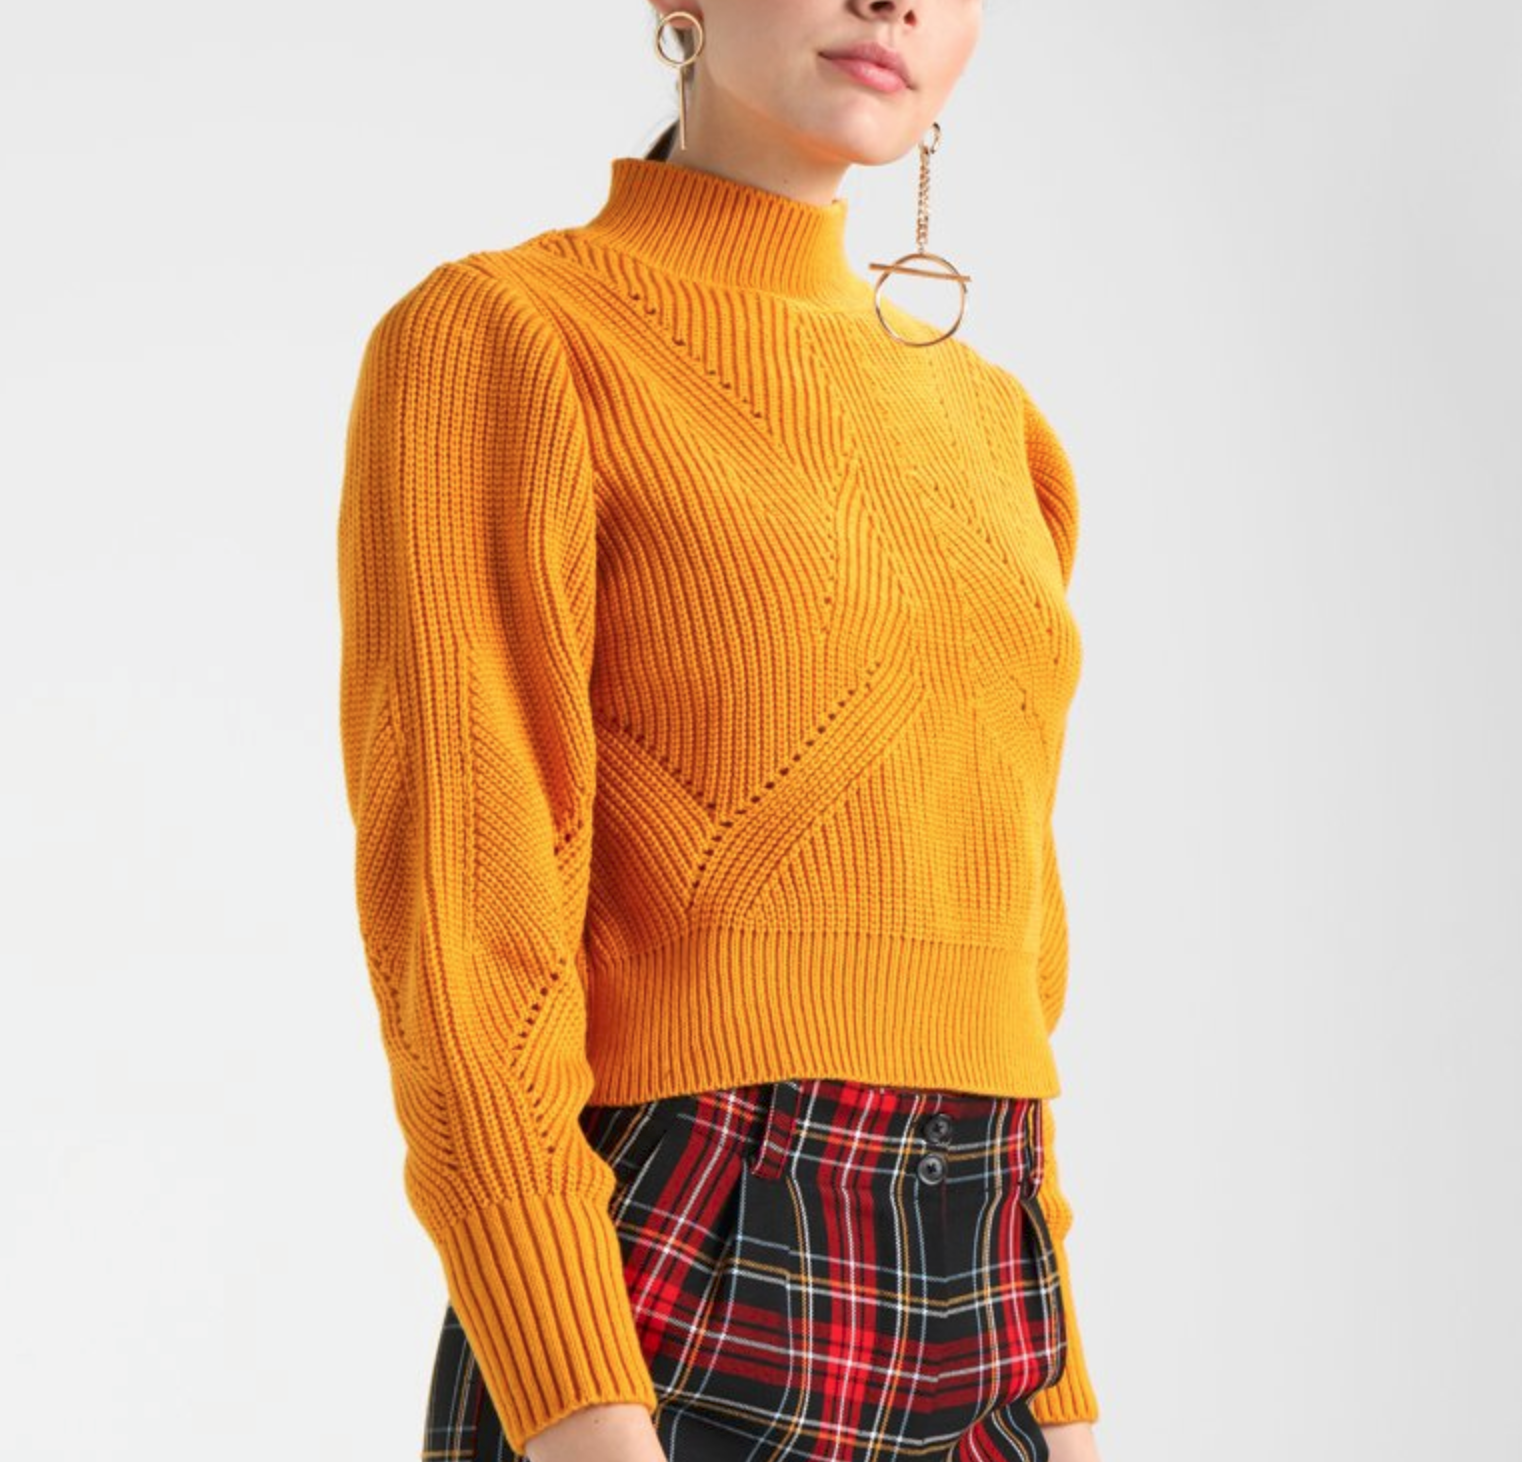 Topshop-sweater